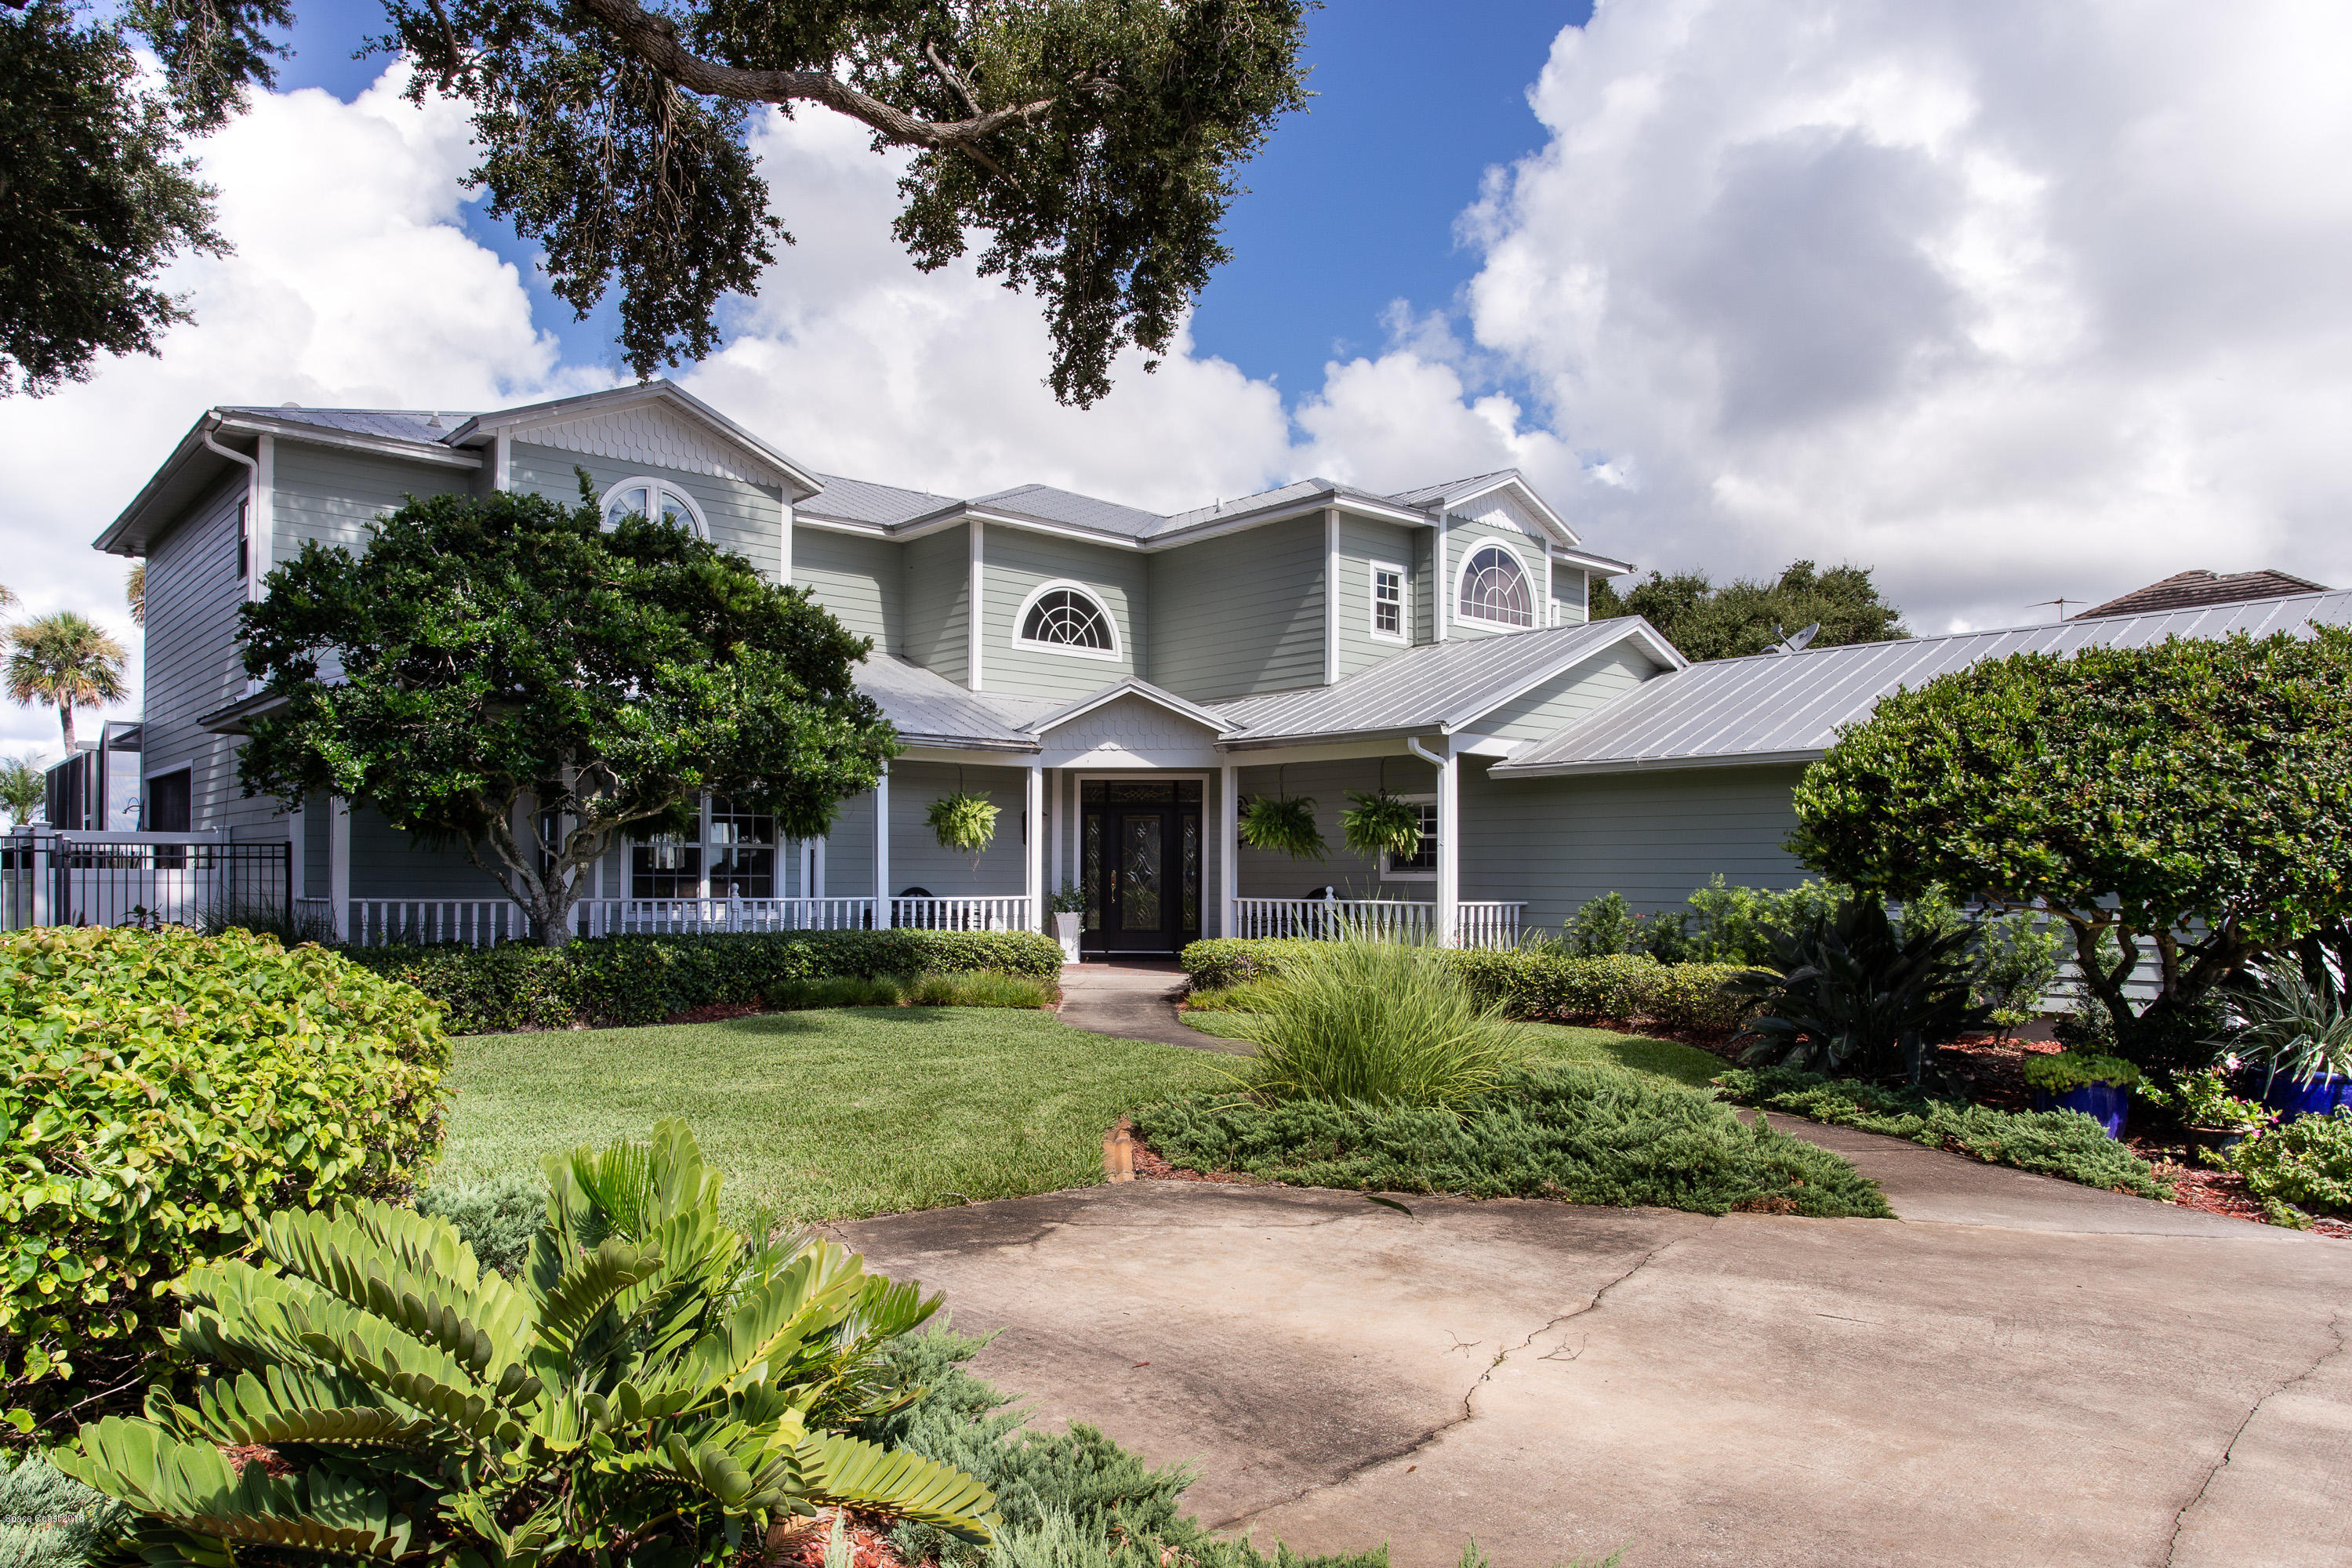 Additional photo for property listing at 5445 S Tropical 5445 S Tropical Merritt Island, Florida 32952 United States